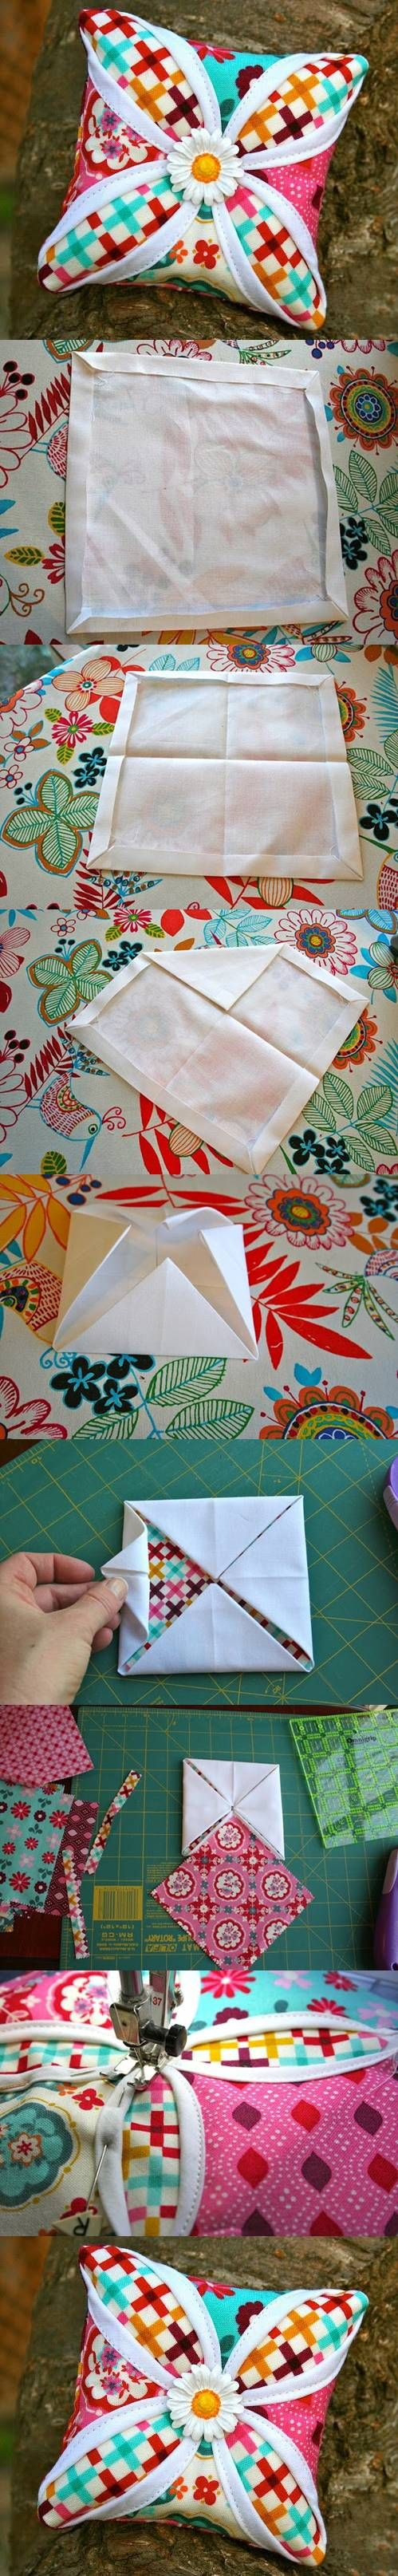 DIY Cathedral Pillow Pattern DIY Projects